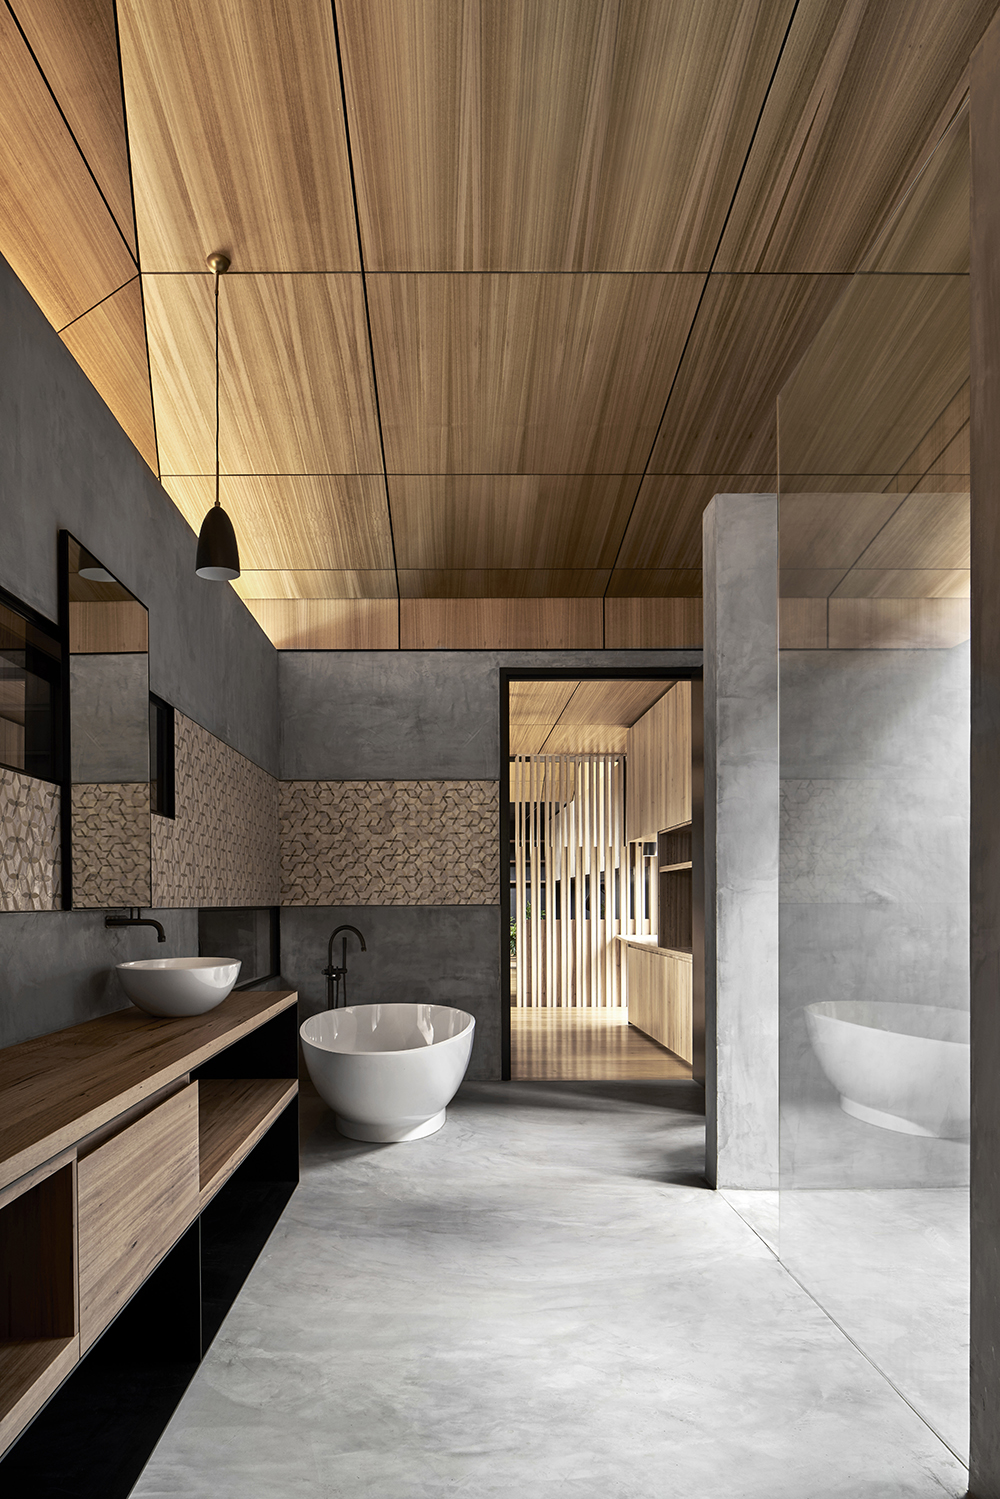 4701_RESNEW_CASAX_BRANCHSTUDIOARCHITECTS_PETERCLARKE_06